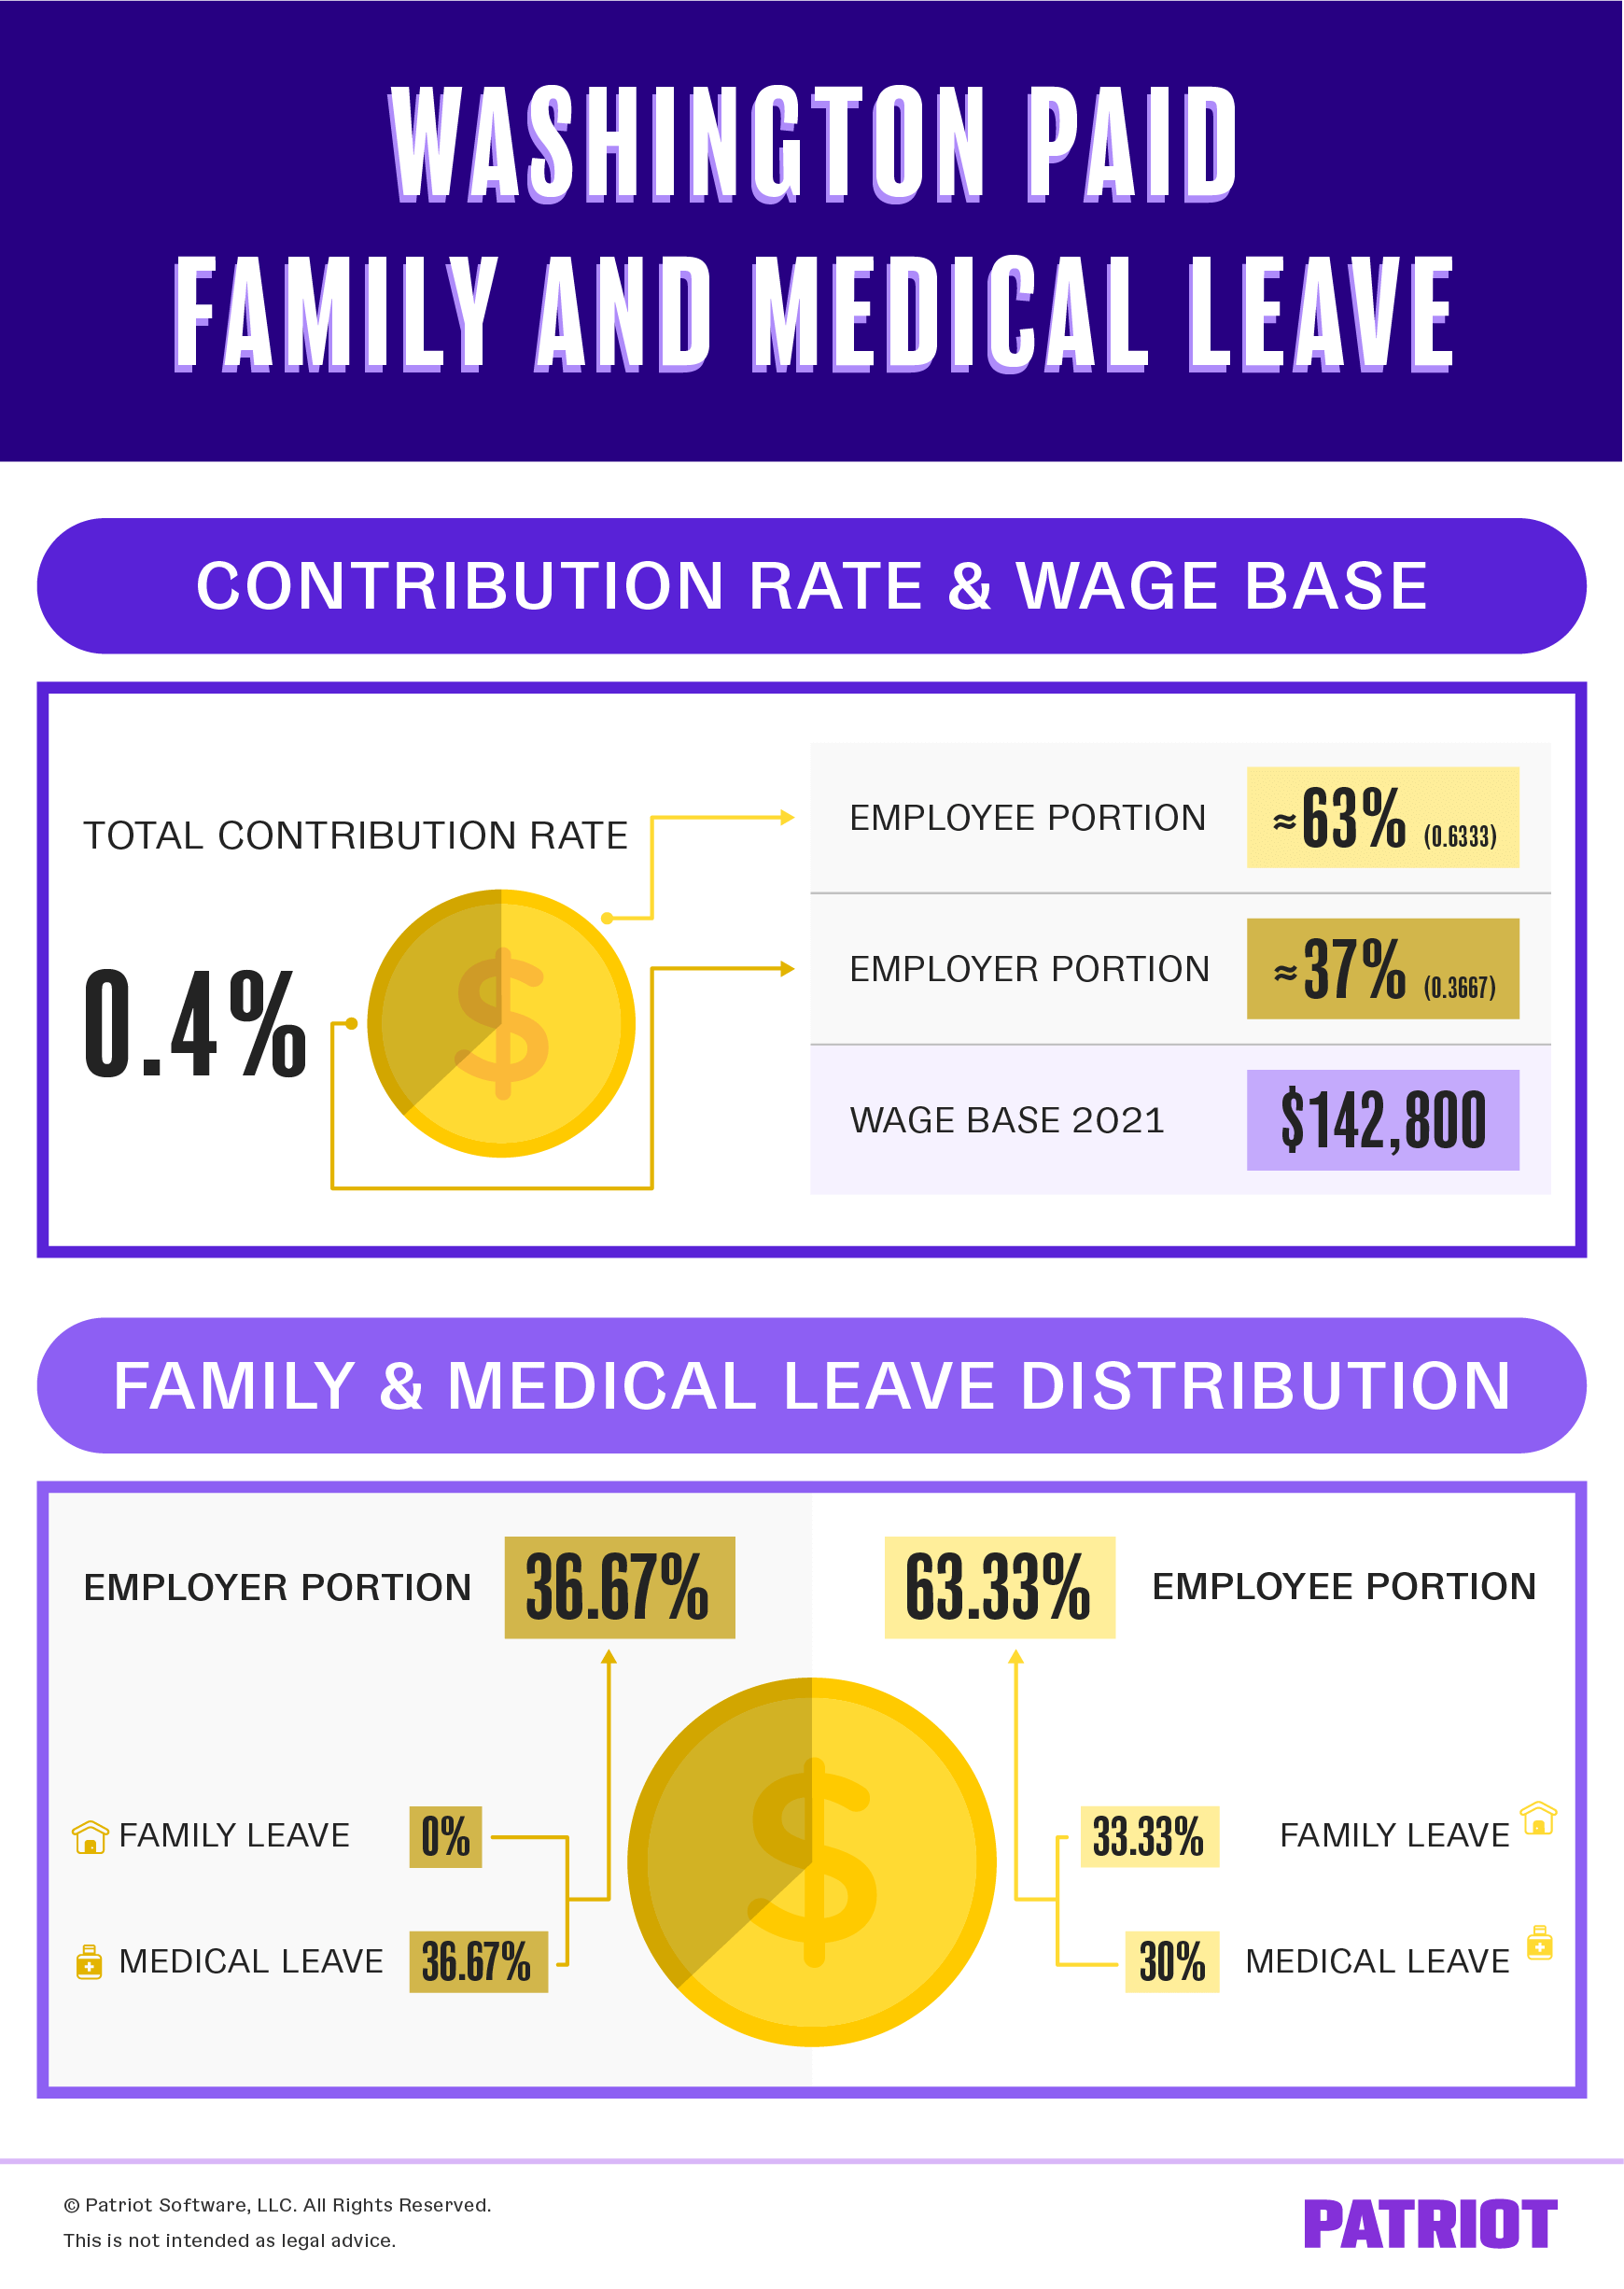 washington paid family and medical leave contribution amount breakdown